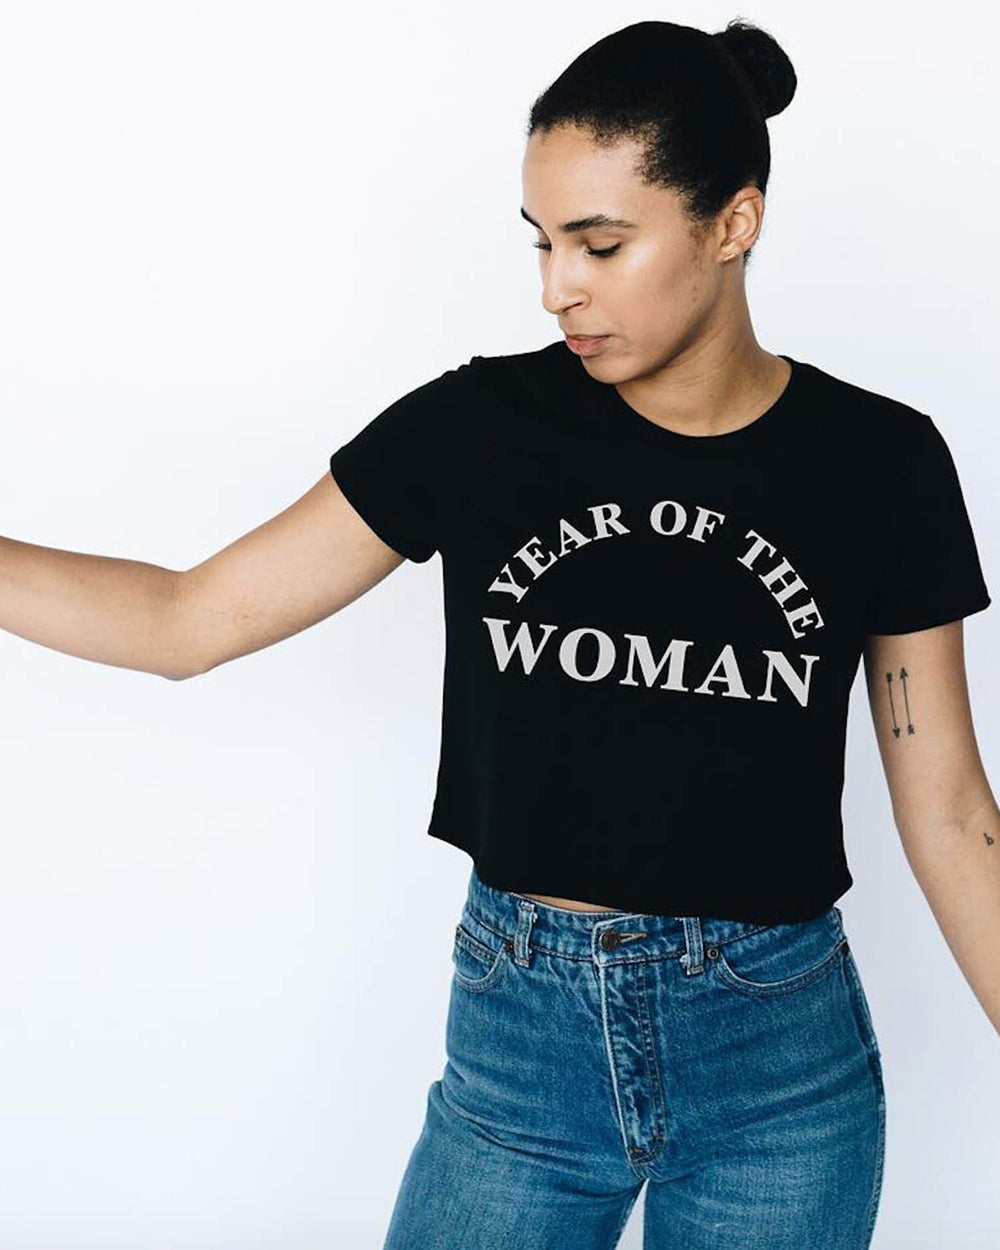 Year of the Woman Crop Top